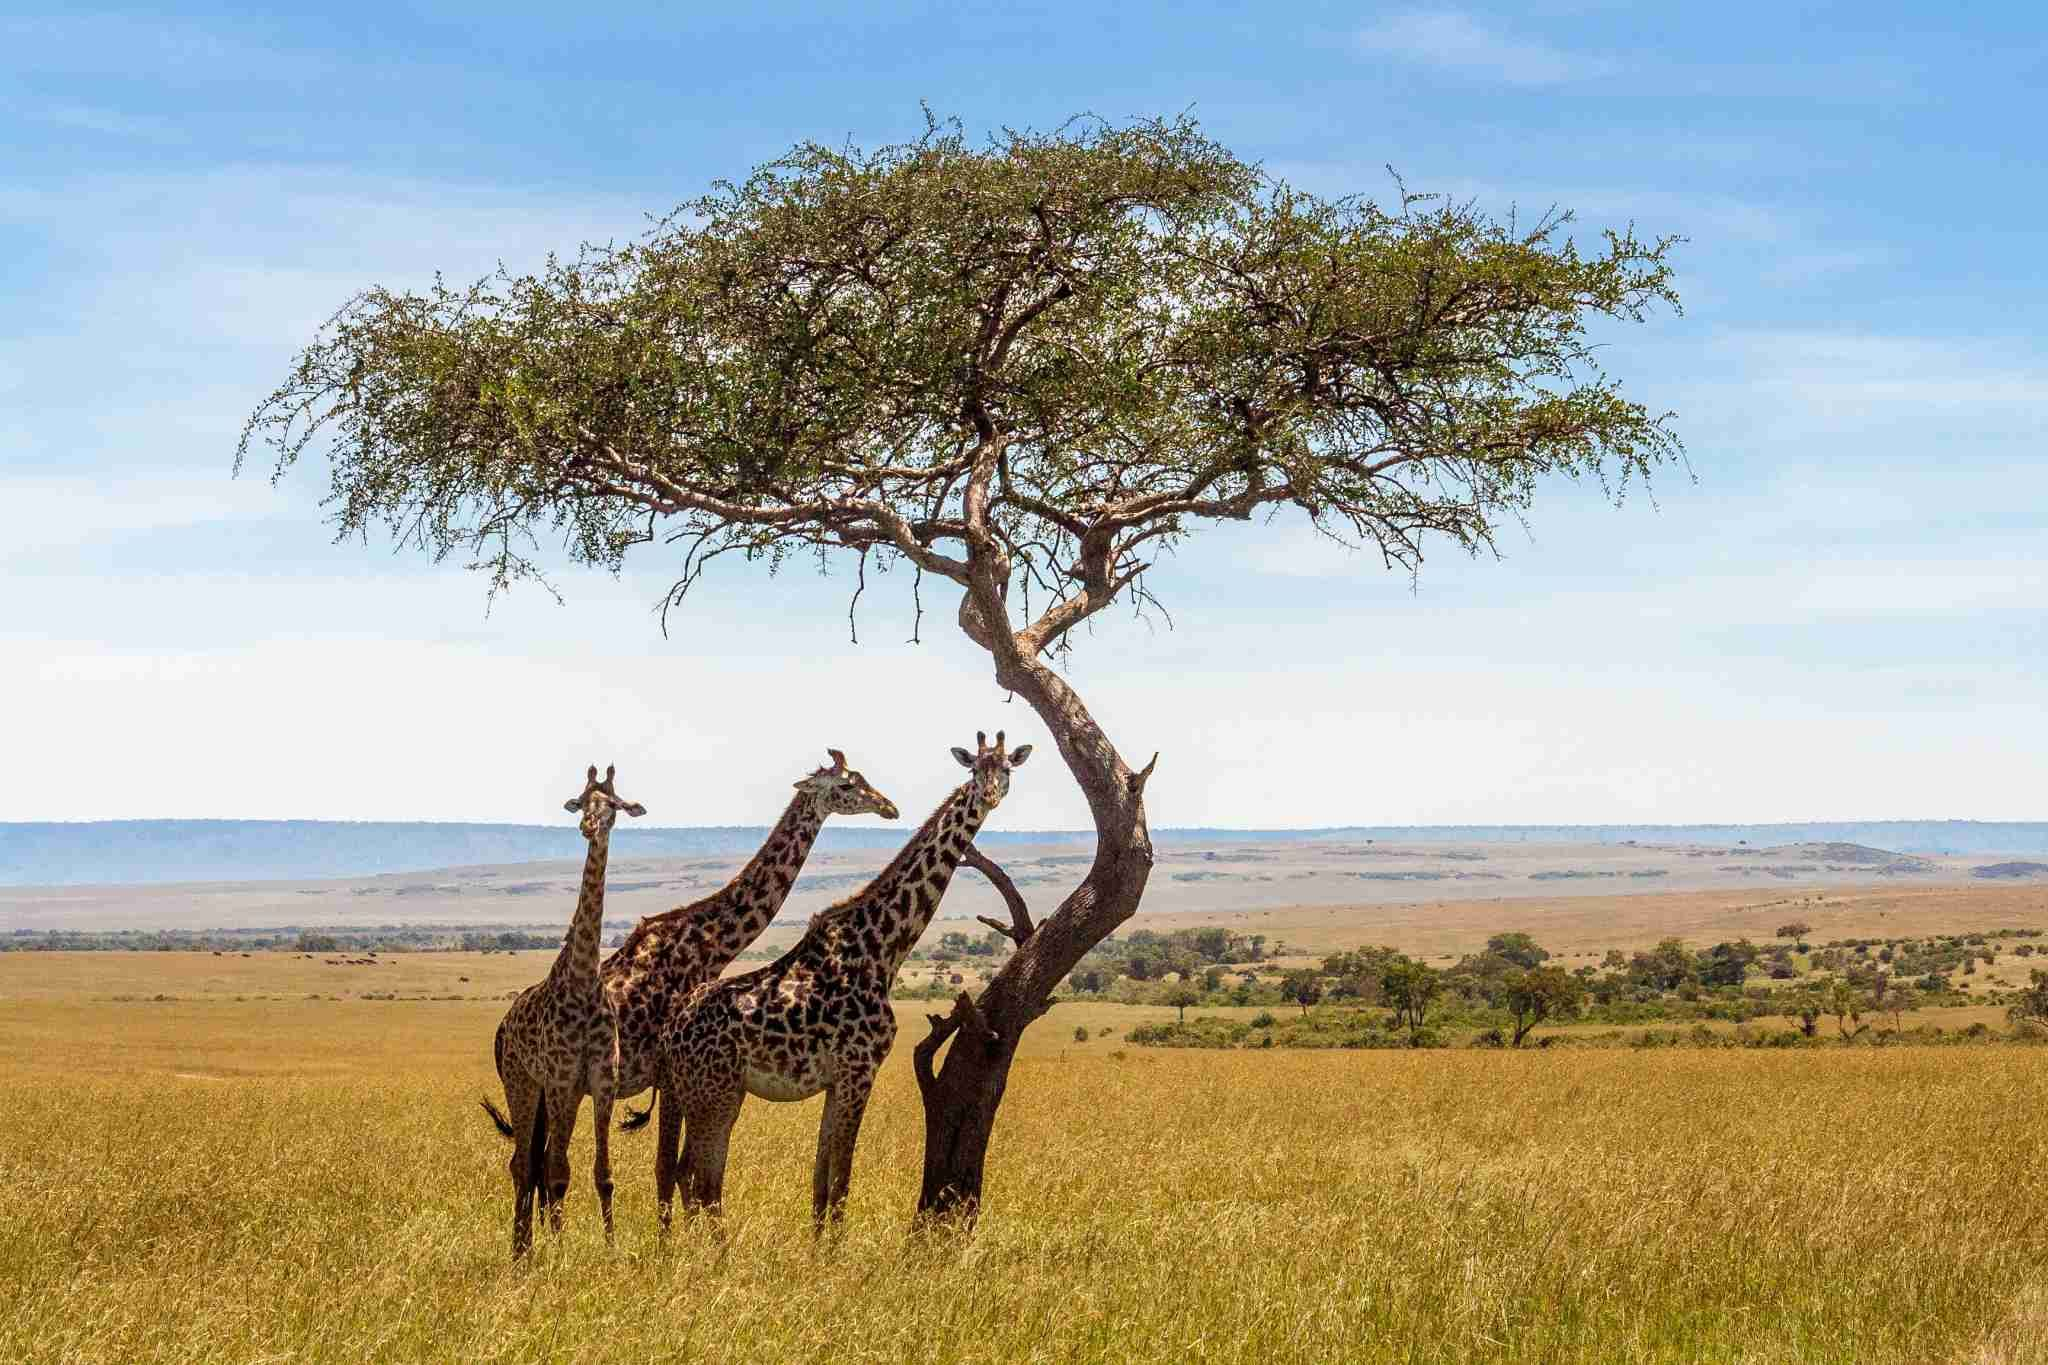 How To Ensure Your African Safari Is Ethical In